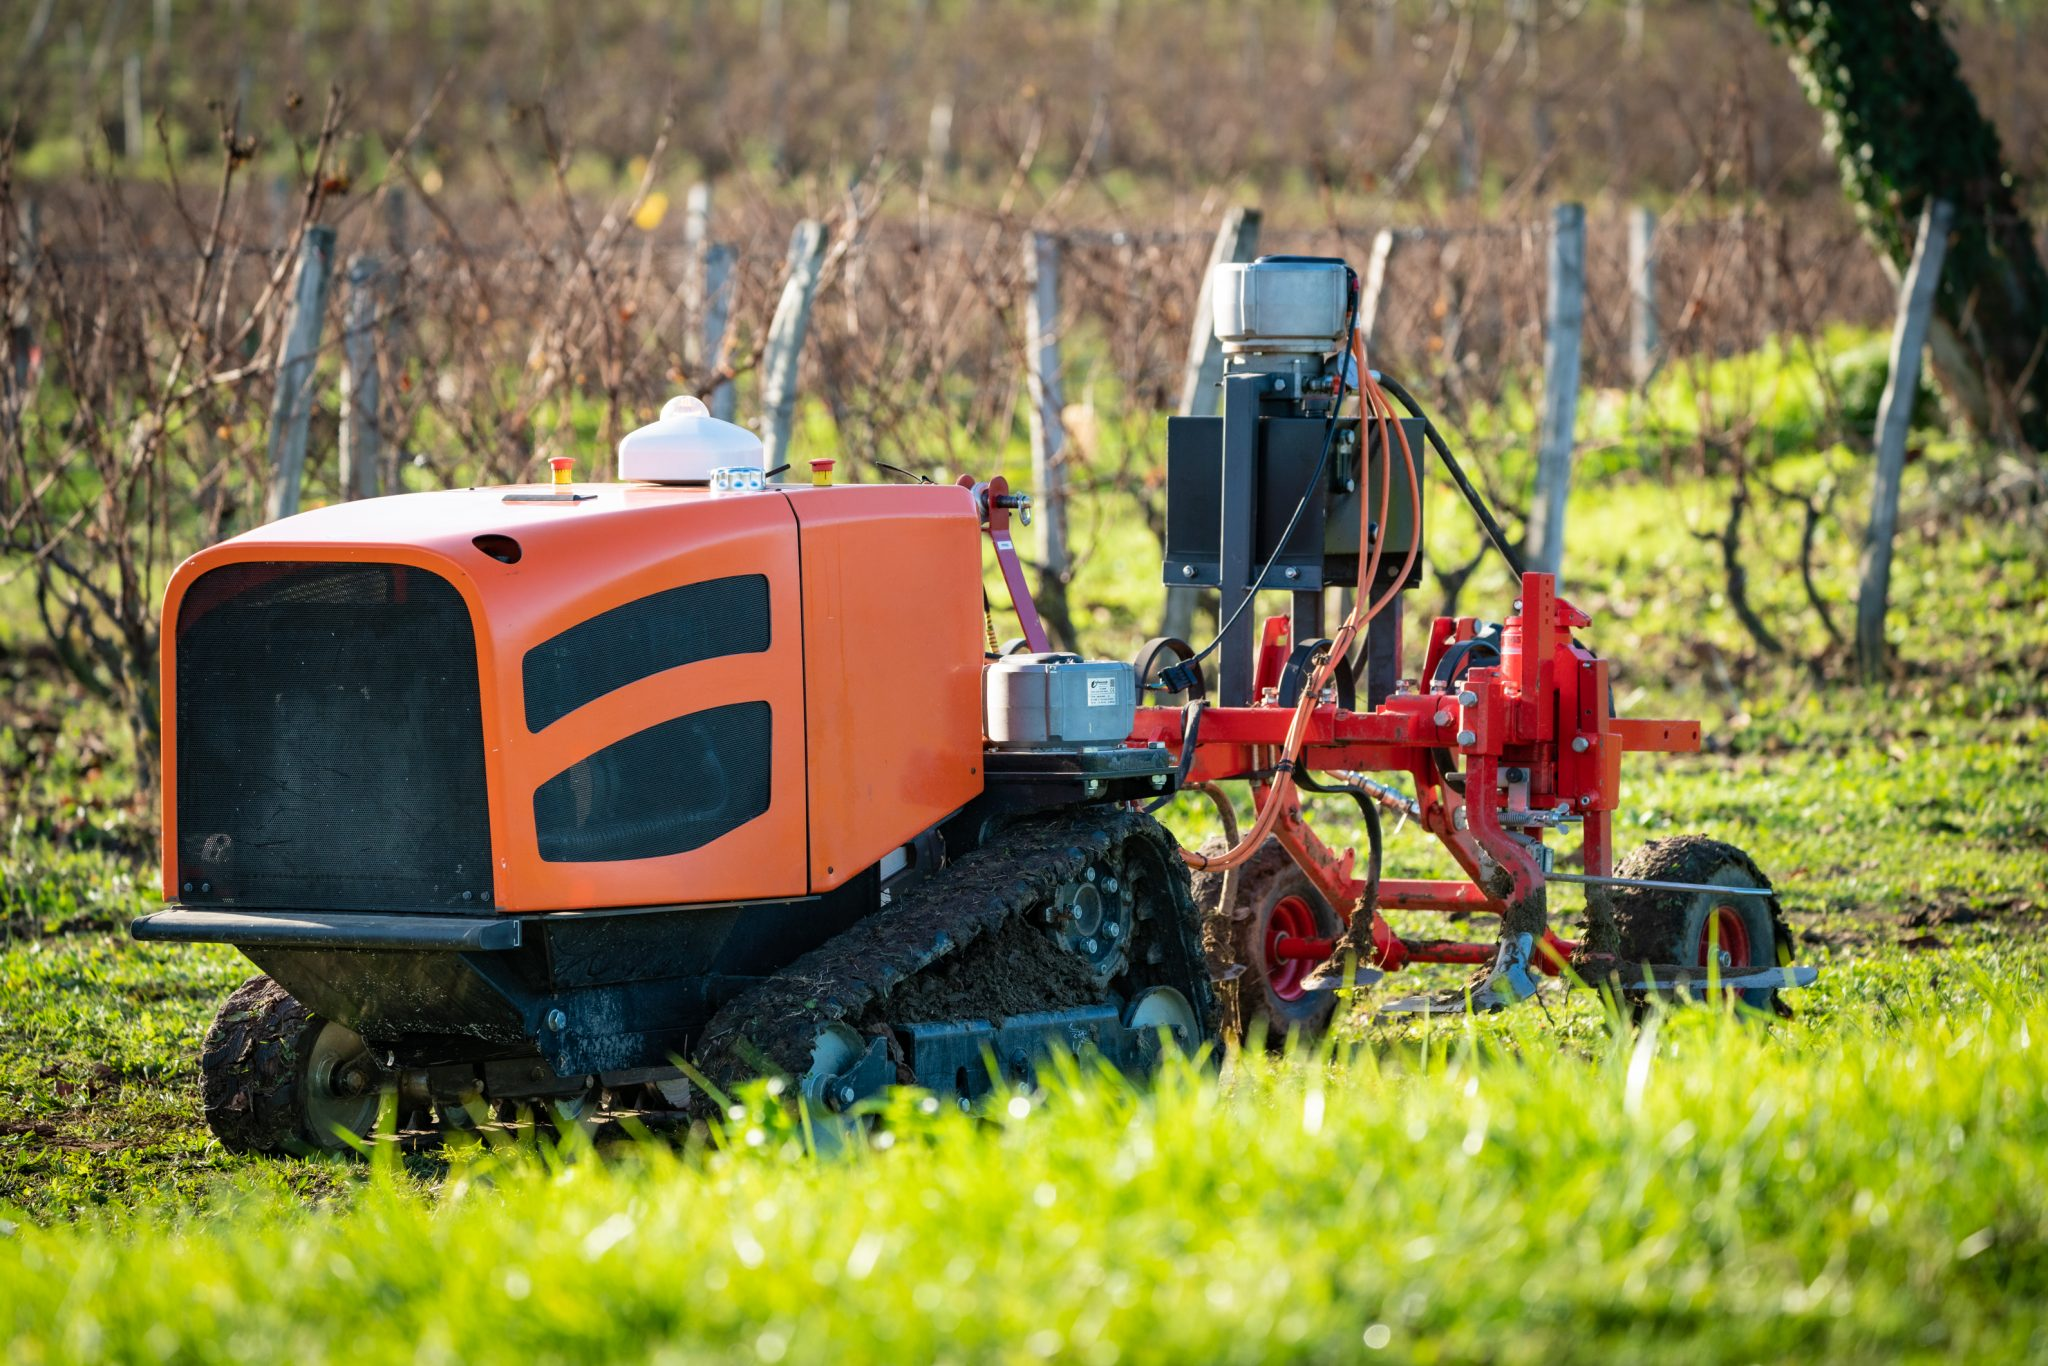 Killing weeds in a sustainable way using a autonomous robot with laser vision (ENG)